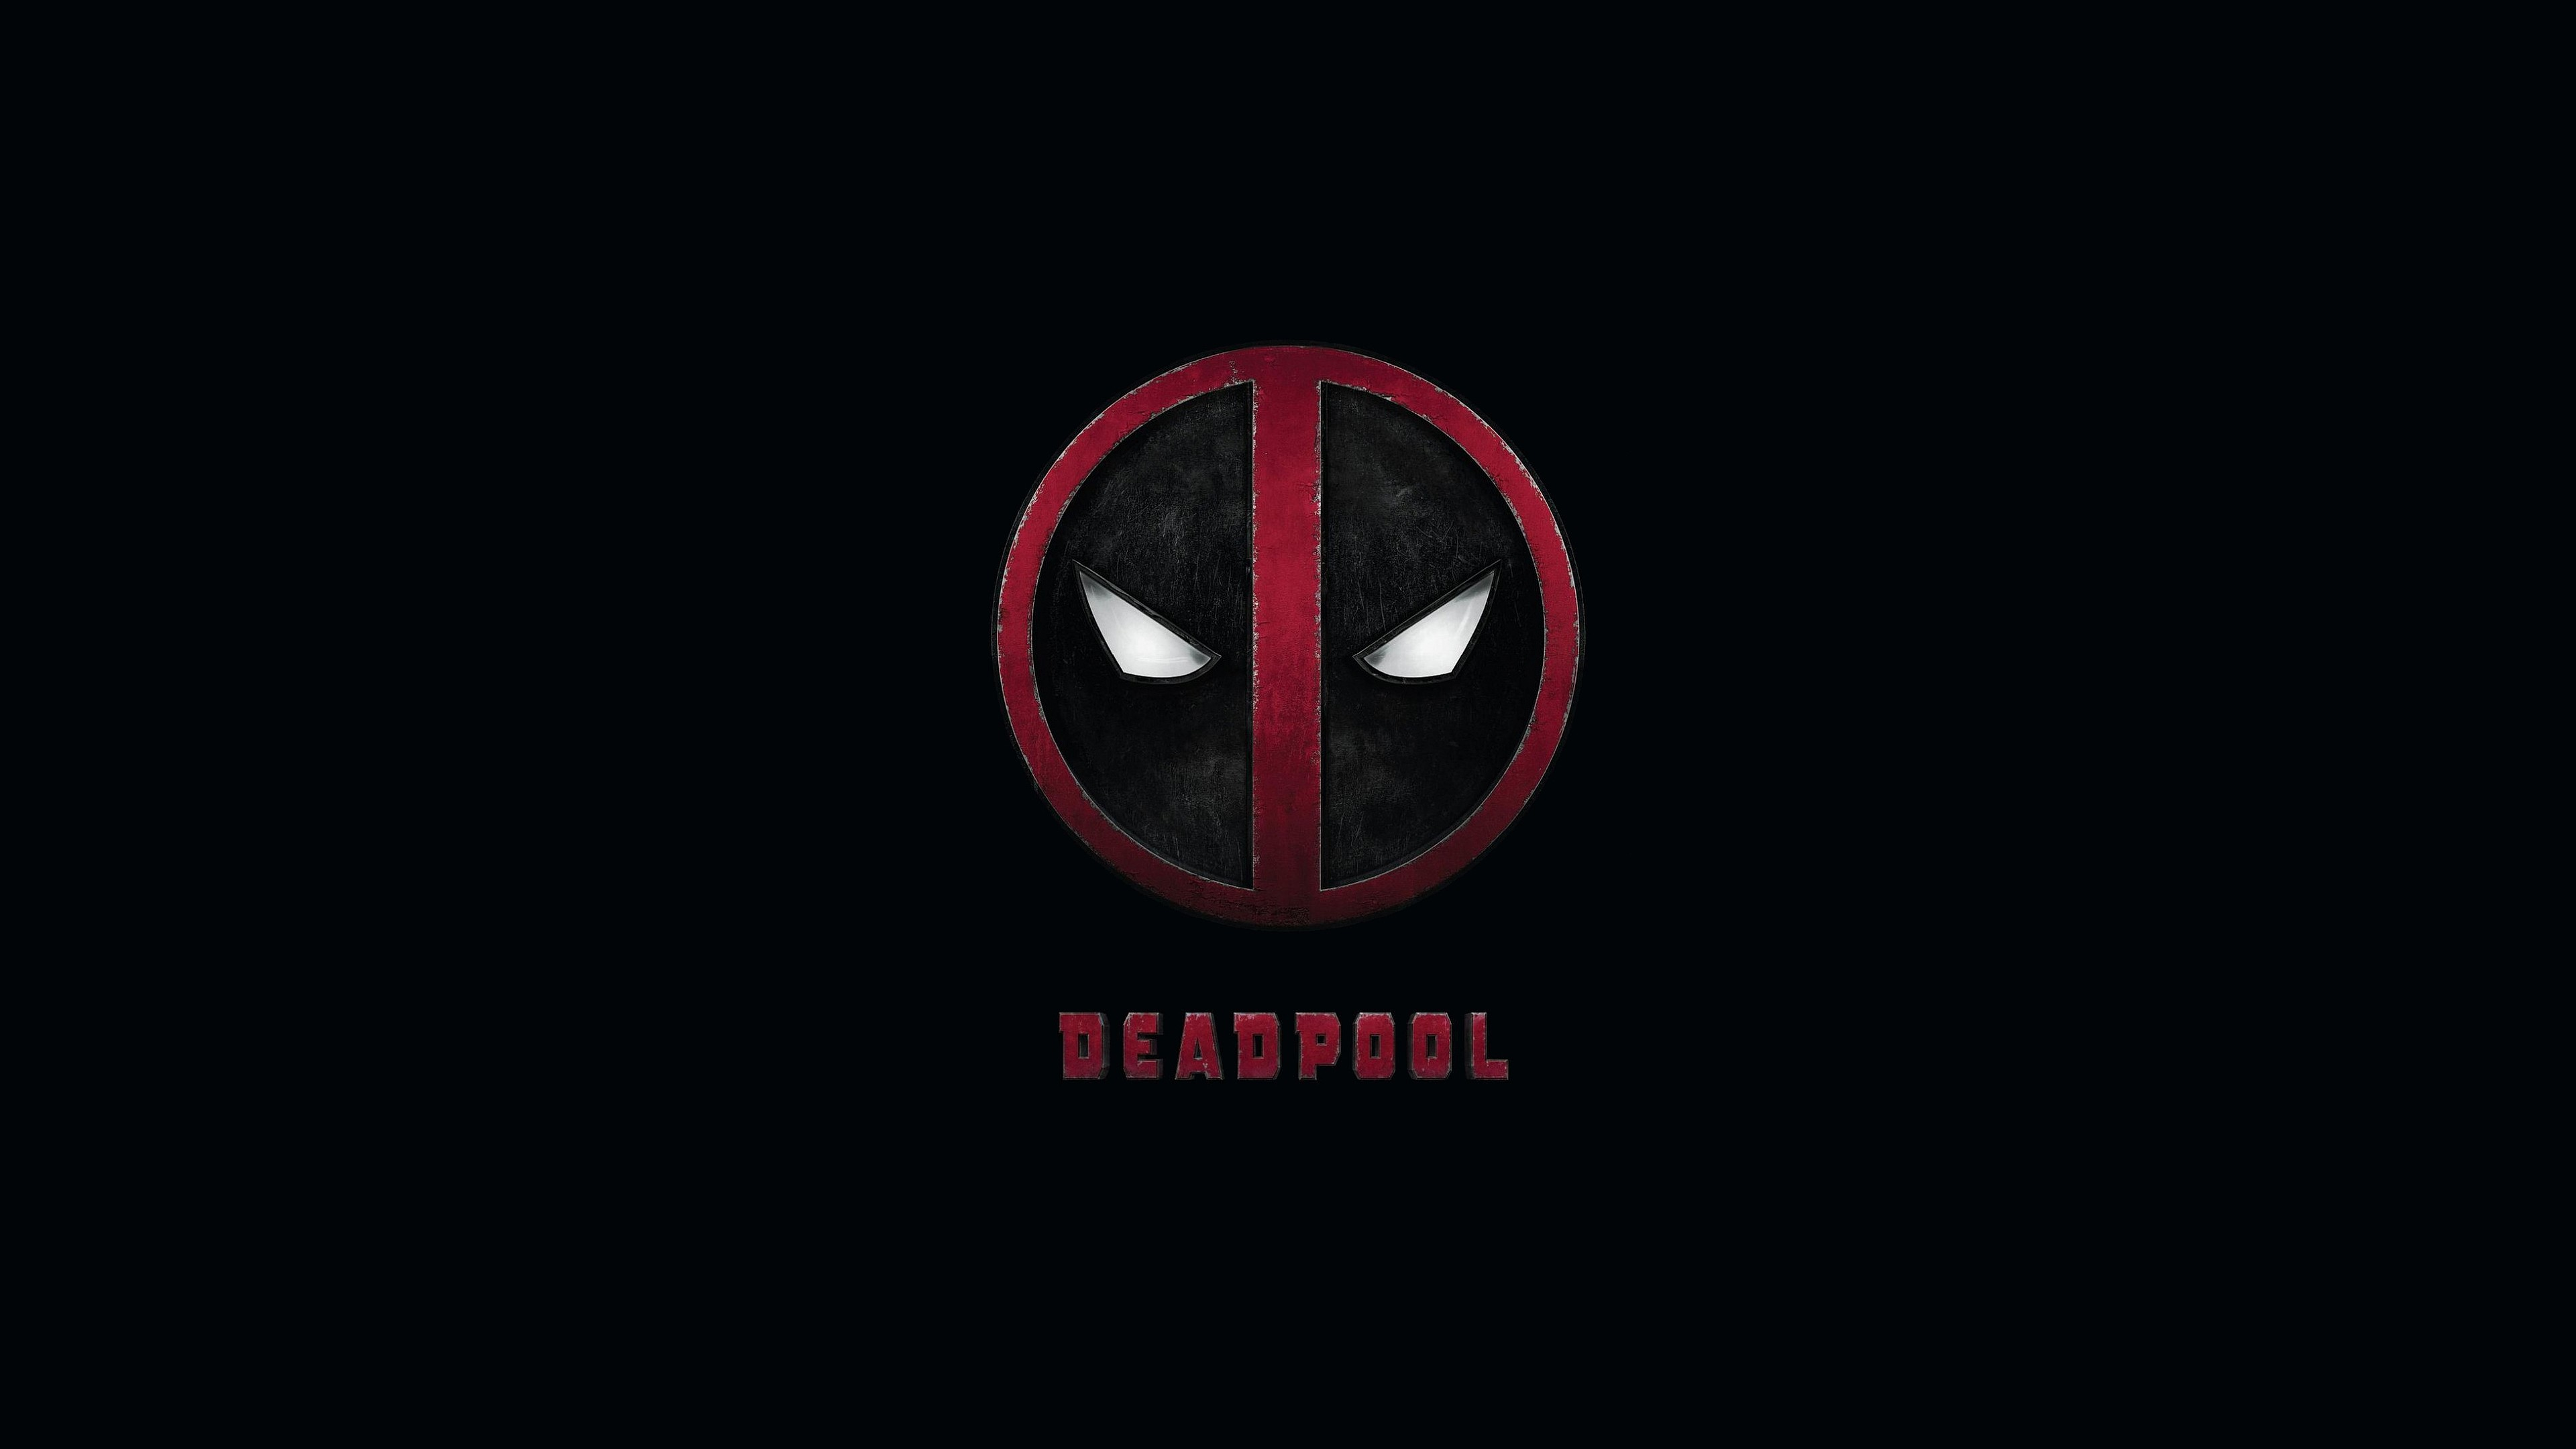 Deadpool-logo-4k-movie-wallpaper-2016-3840×2160.jpg